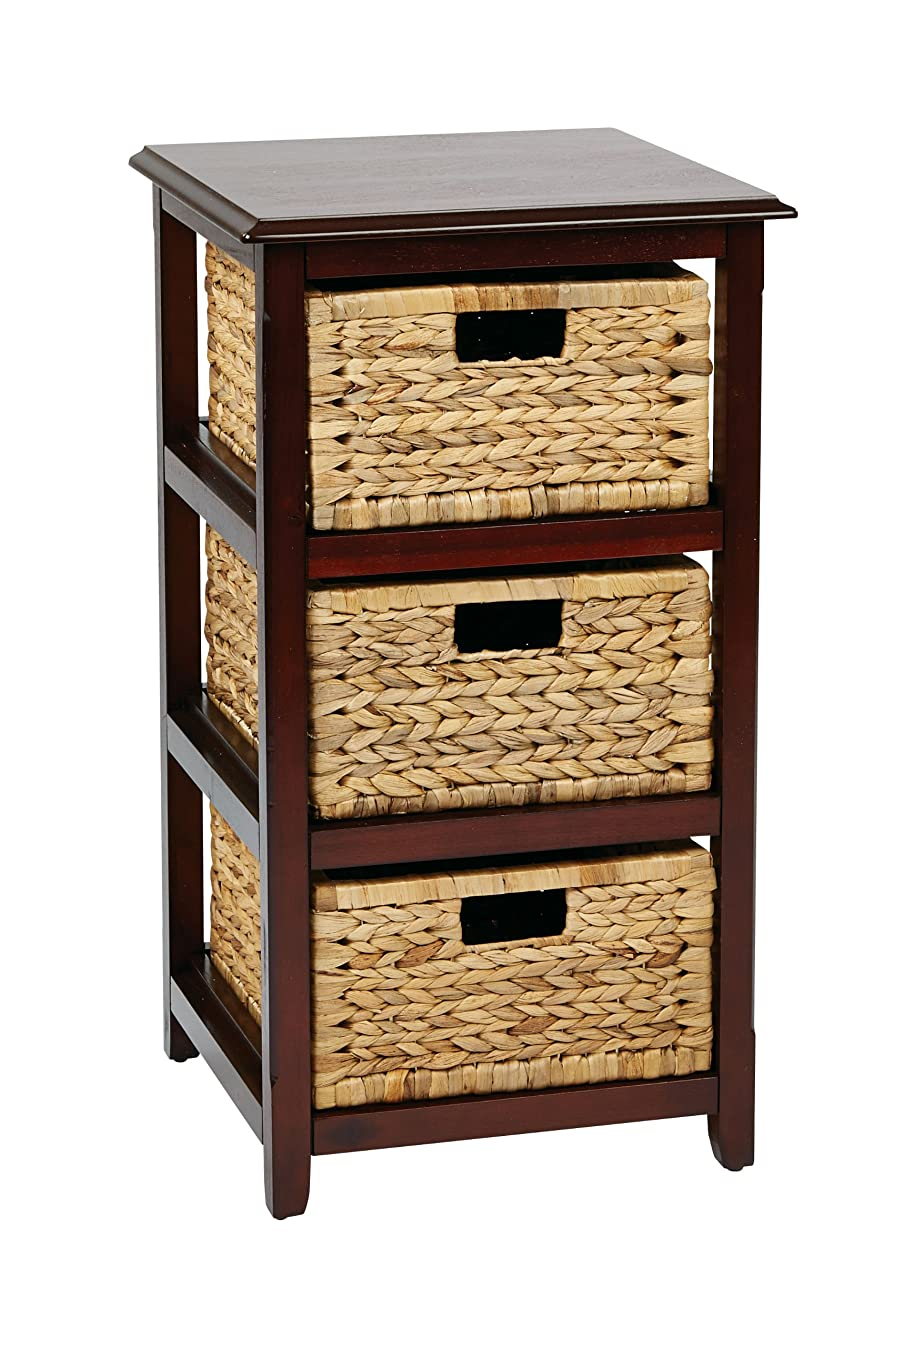 OSP Designs SBK4513A-ES Office Star Seabrook 3-Tier Storage Unit with Natural Baskets, Espresso